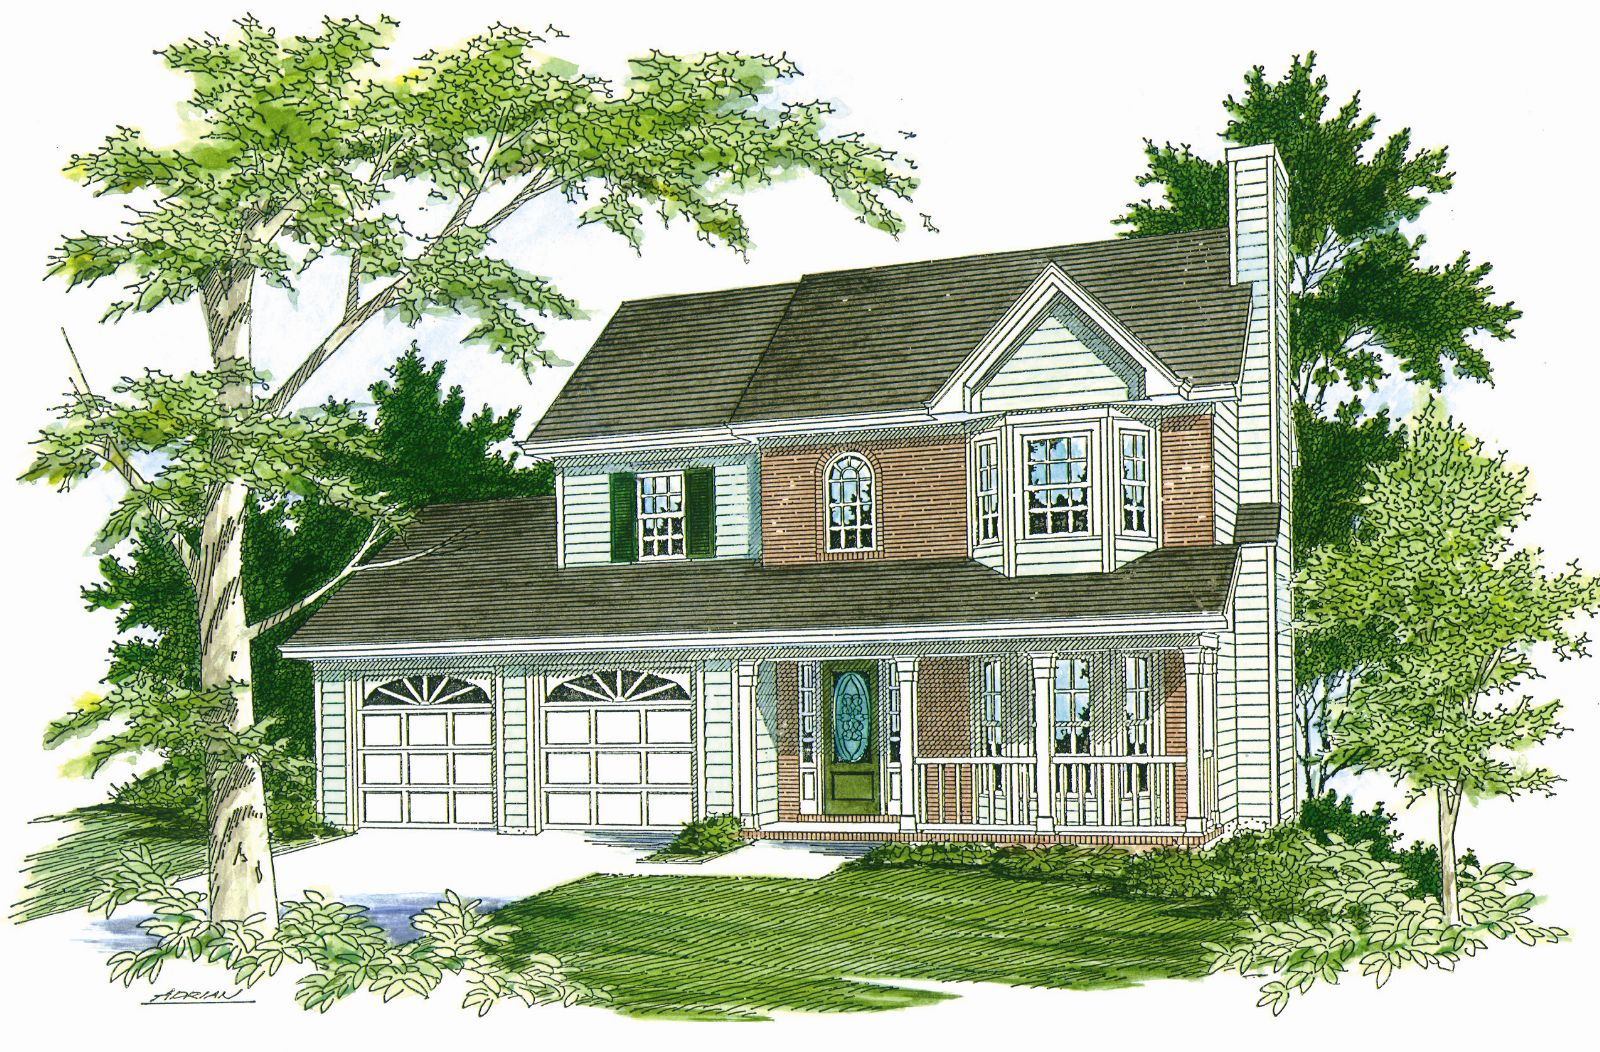 House plans with cost estimates to build house plan cost for House plans with estimated cost to build in kerala